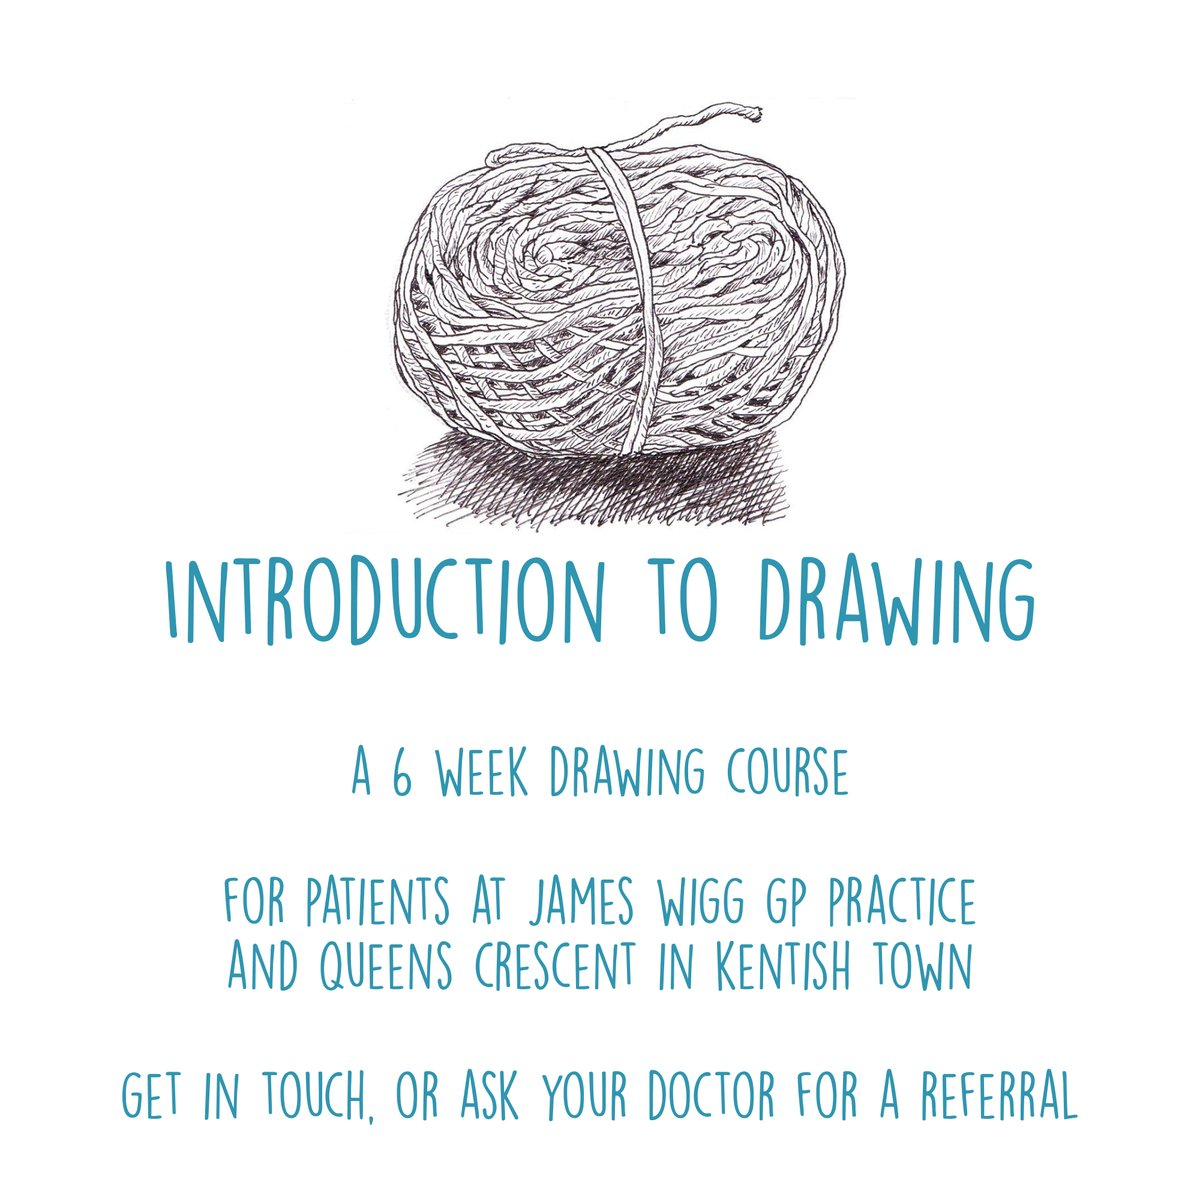 The lovely Cat Andrews is facilitating our new 'Introduction to Drawing' sessions this summer. If you are a James Wigg or QC patient and would like to get involved please speak to your doctor.   #drawing #onlineclasses #london #kentishtown #creativityandwellbeing  @catandrew